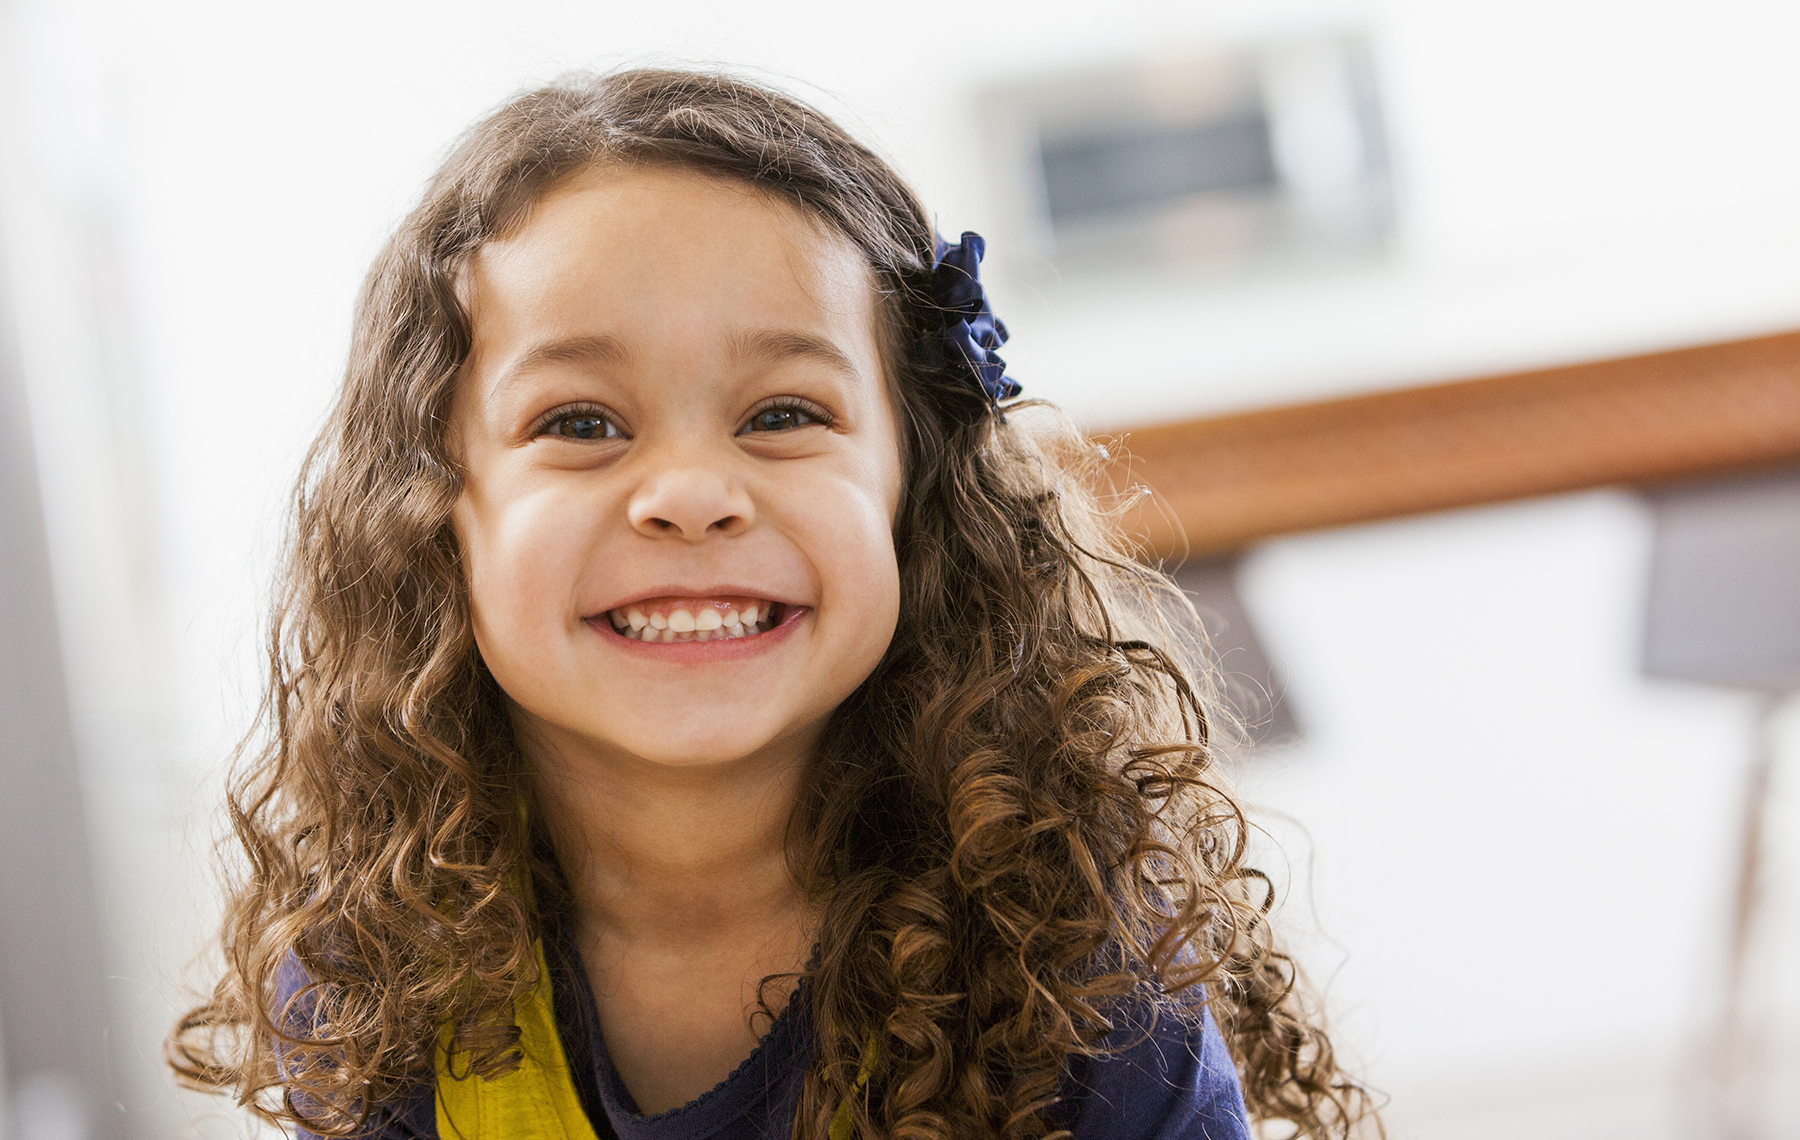 AltaMed Small girl with curls smiling showing teeth